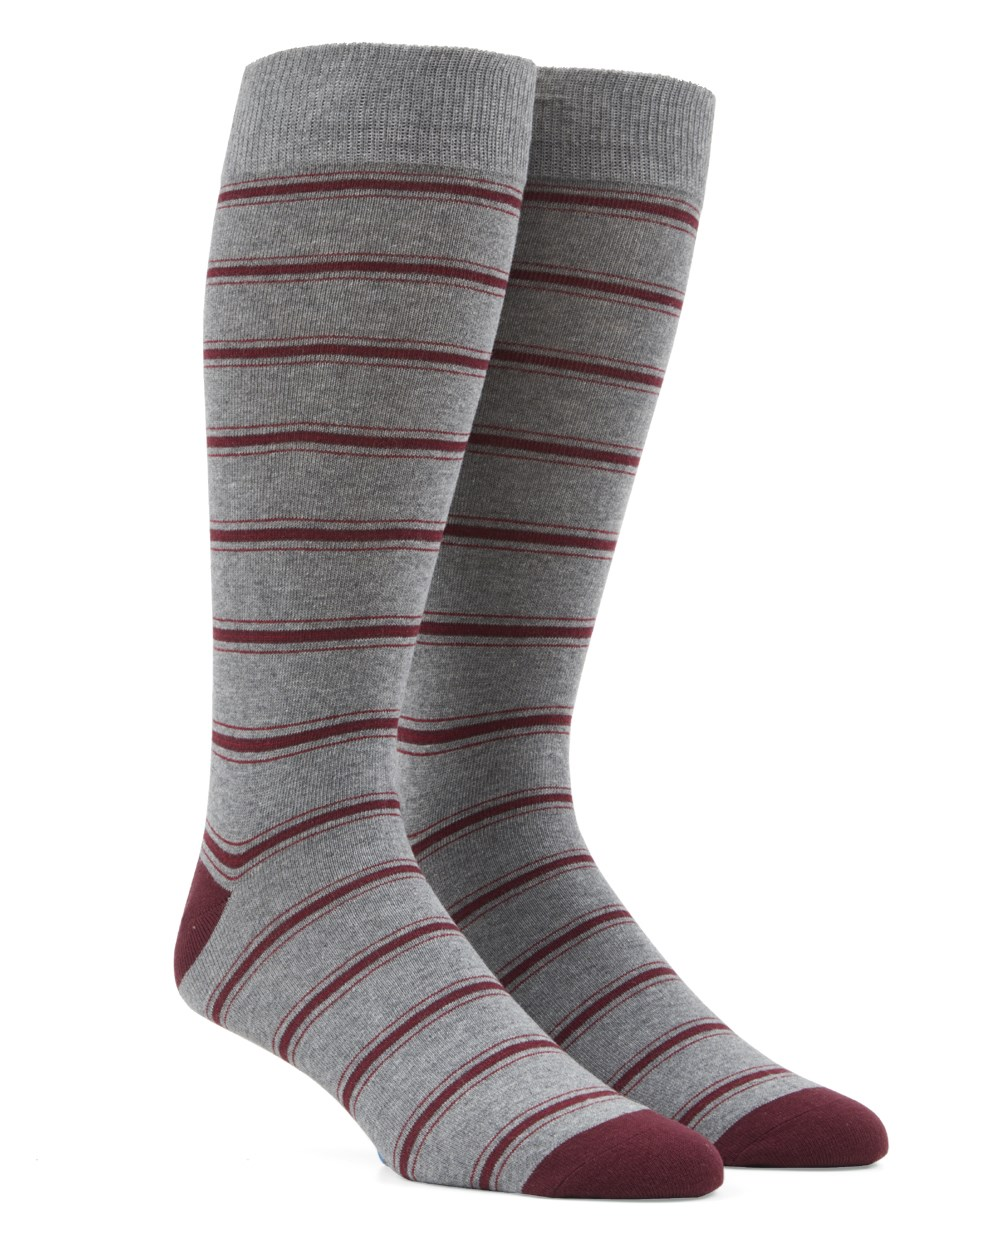 Rival Stripe - Grey - Men's Shoe Size 7-12 - Socks